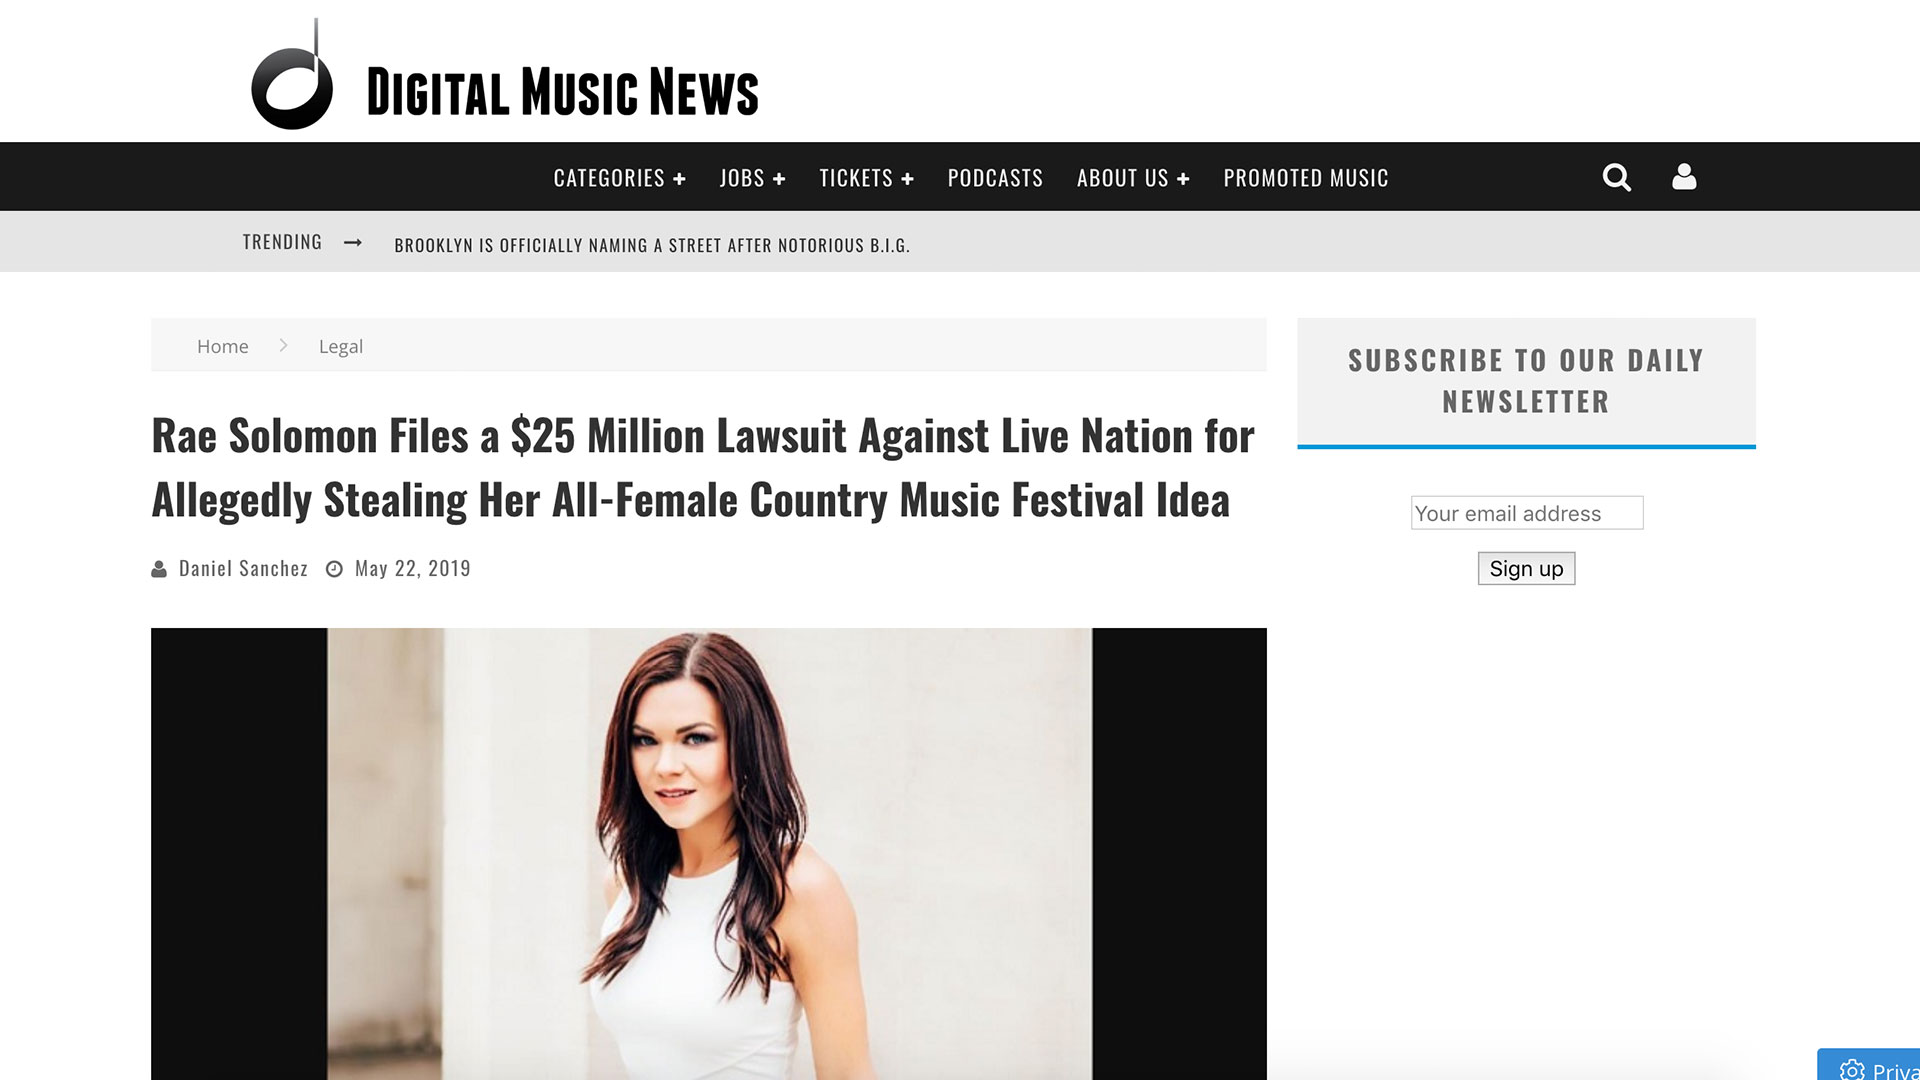 Fairness Rocks News Rae Solomon Files a $25 Million Lawsuit Against Live Nation for Allegedly Stealing Her All-Female Country Music Festival Idea